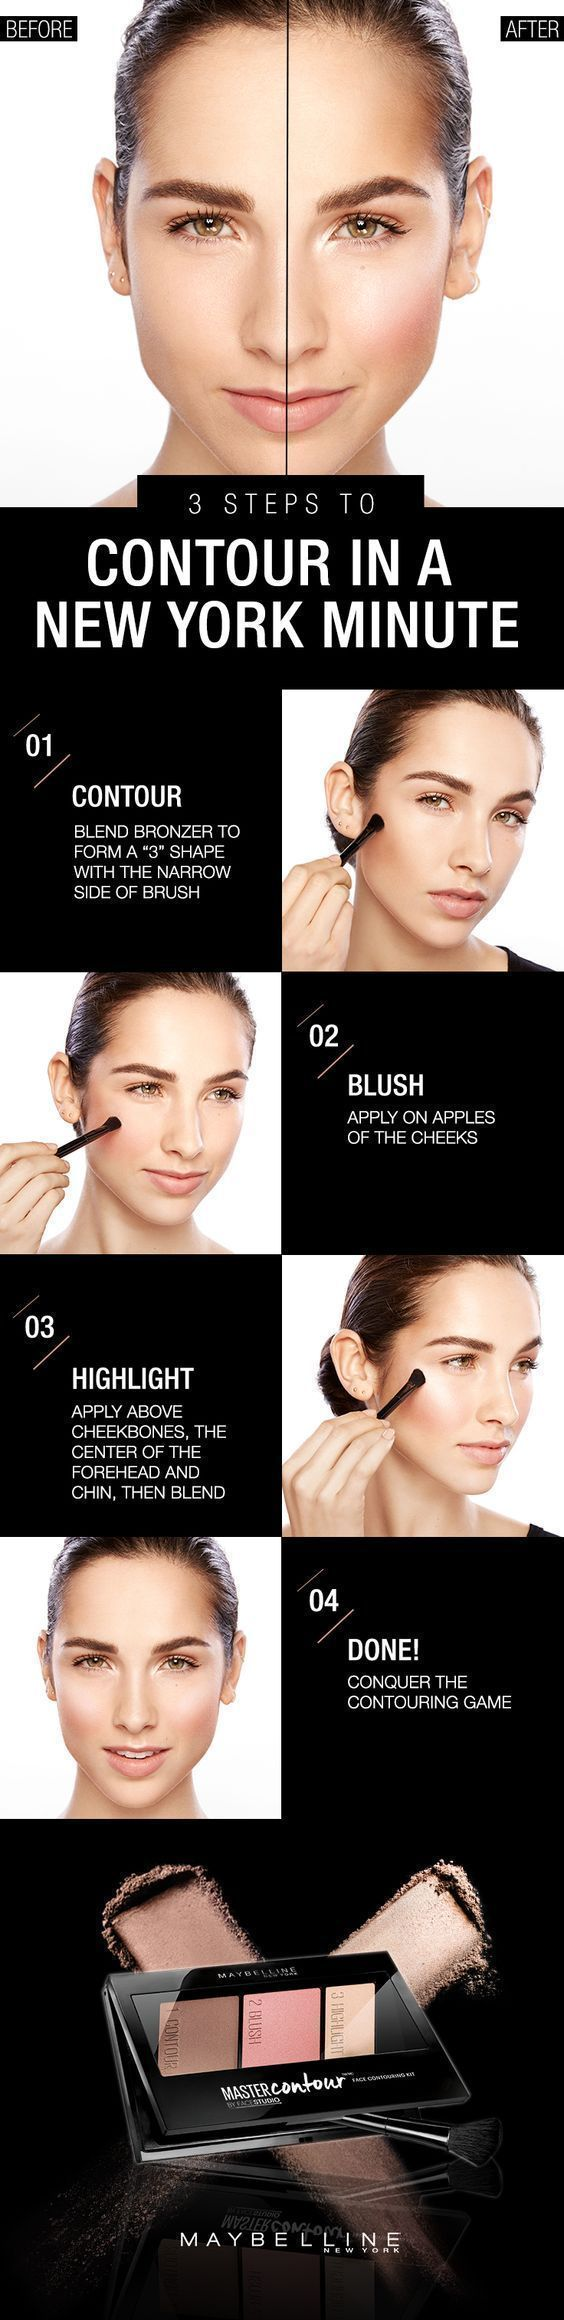 DIY Makeup Tutorials : Easy Contouring Tutorial For Busy Ladies | Quick And Easy Makeup Tips And Tricks...   https://www.youtube.com/channel/UC76YOQIJa6Gej0_FuhRQxJg